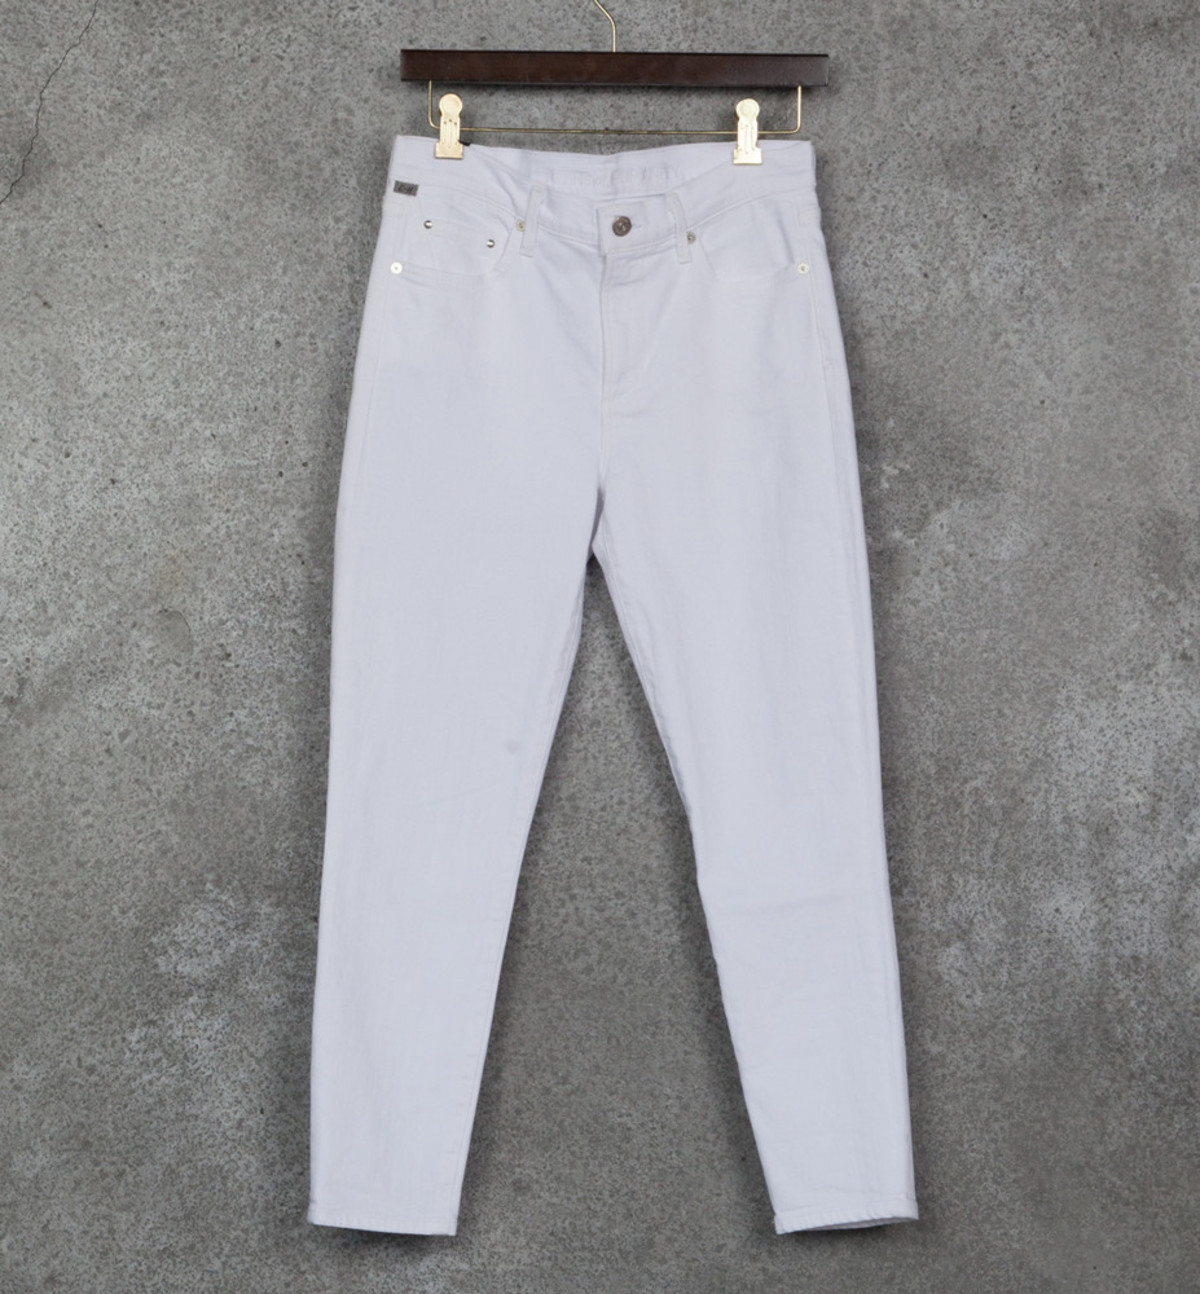 041bf621a8b Citizens of Humanity Optic White Crop Rocket High Rise Skinny ...